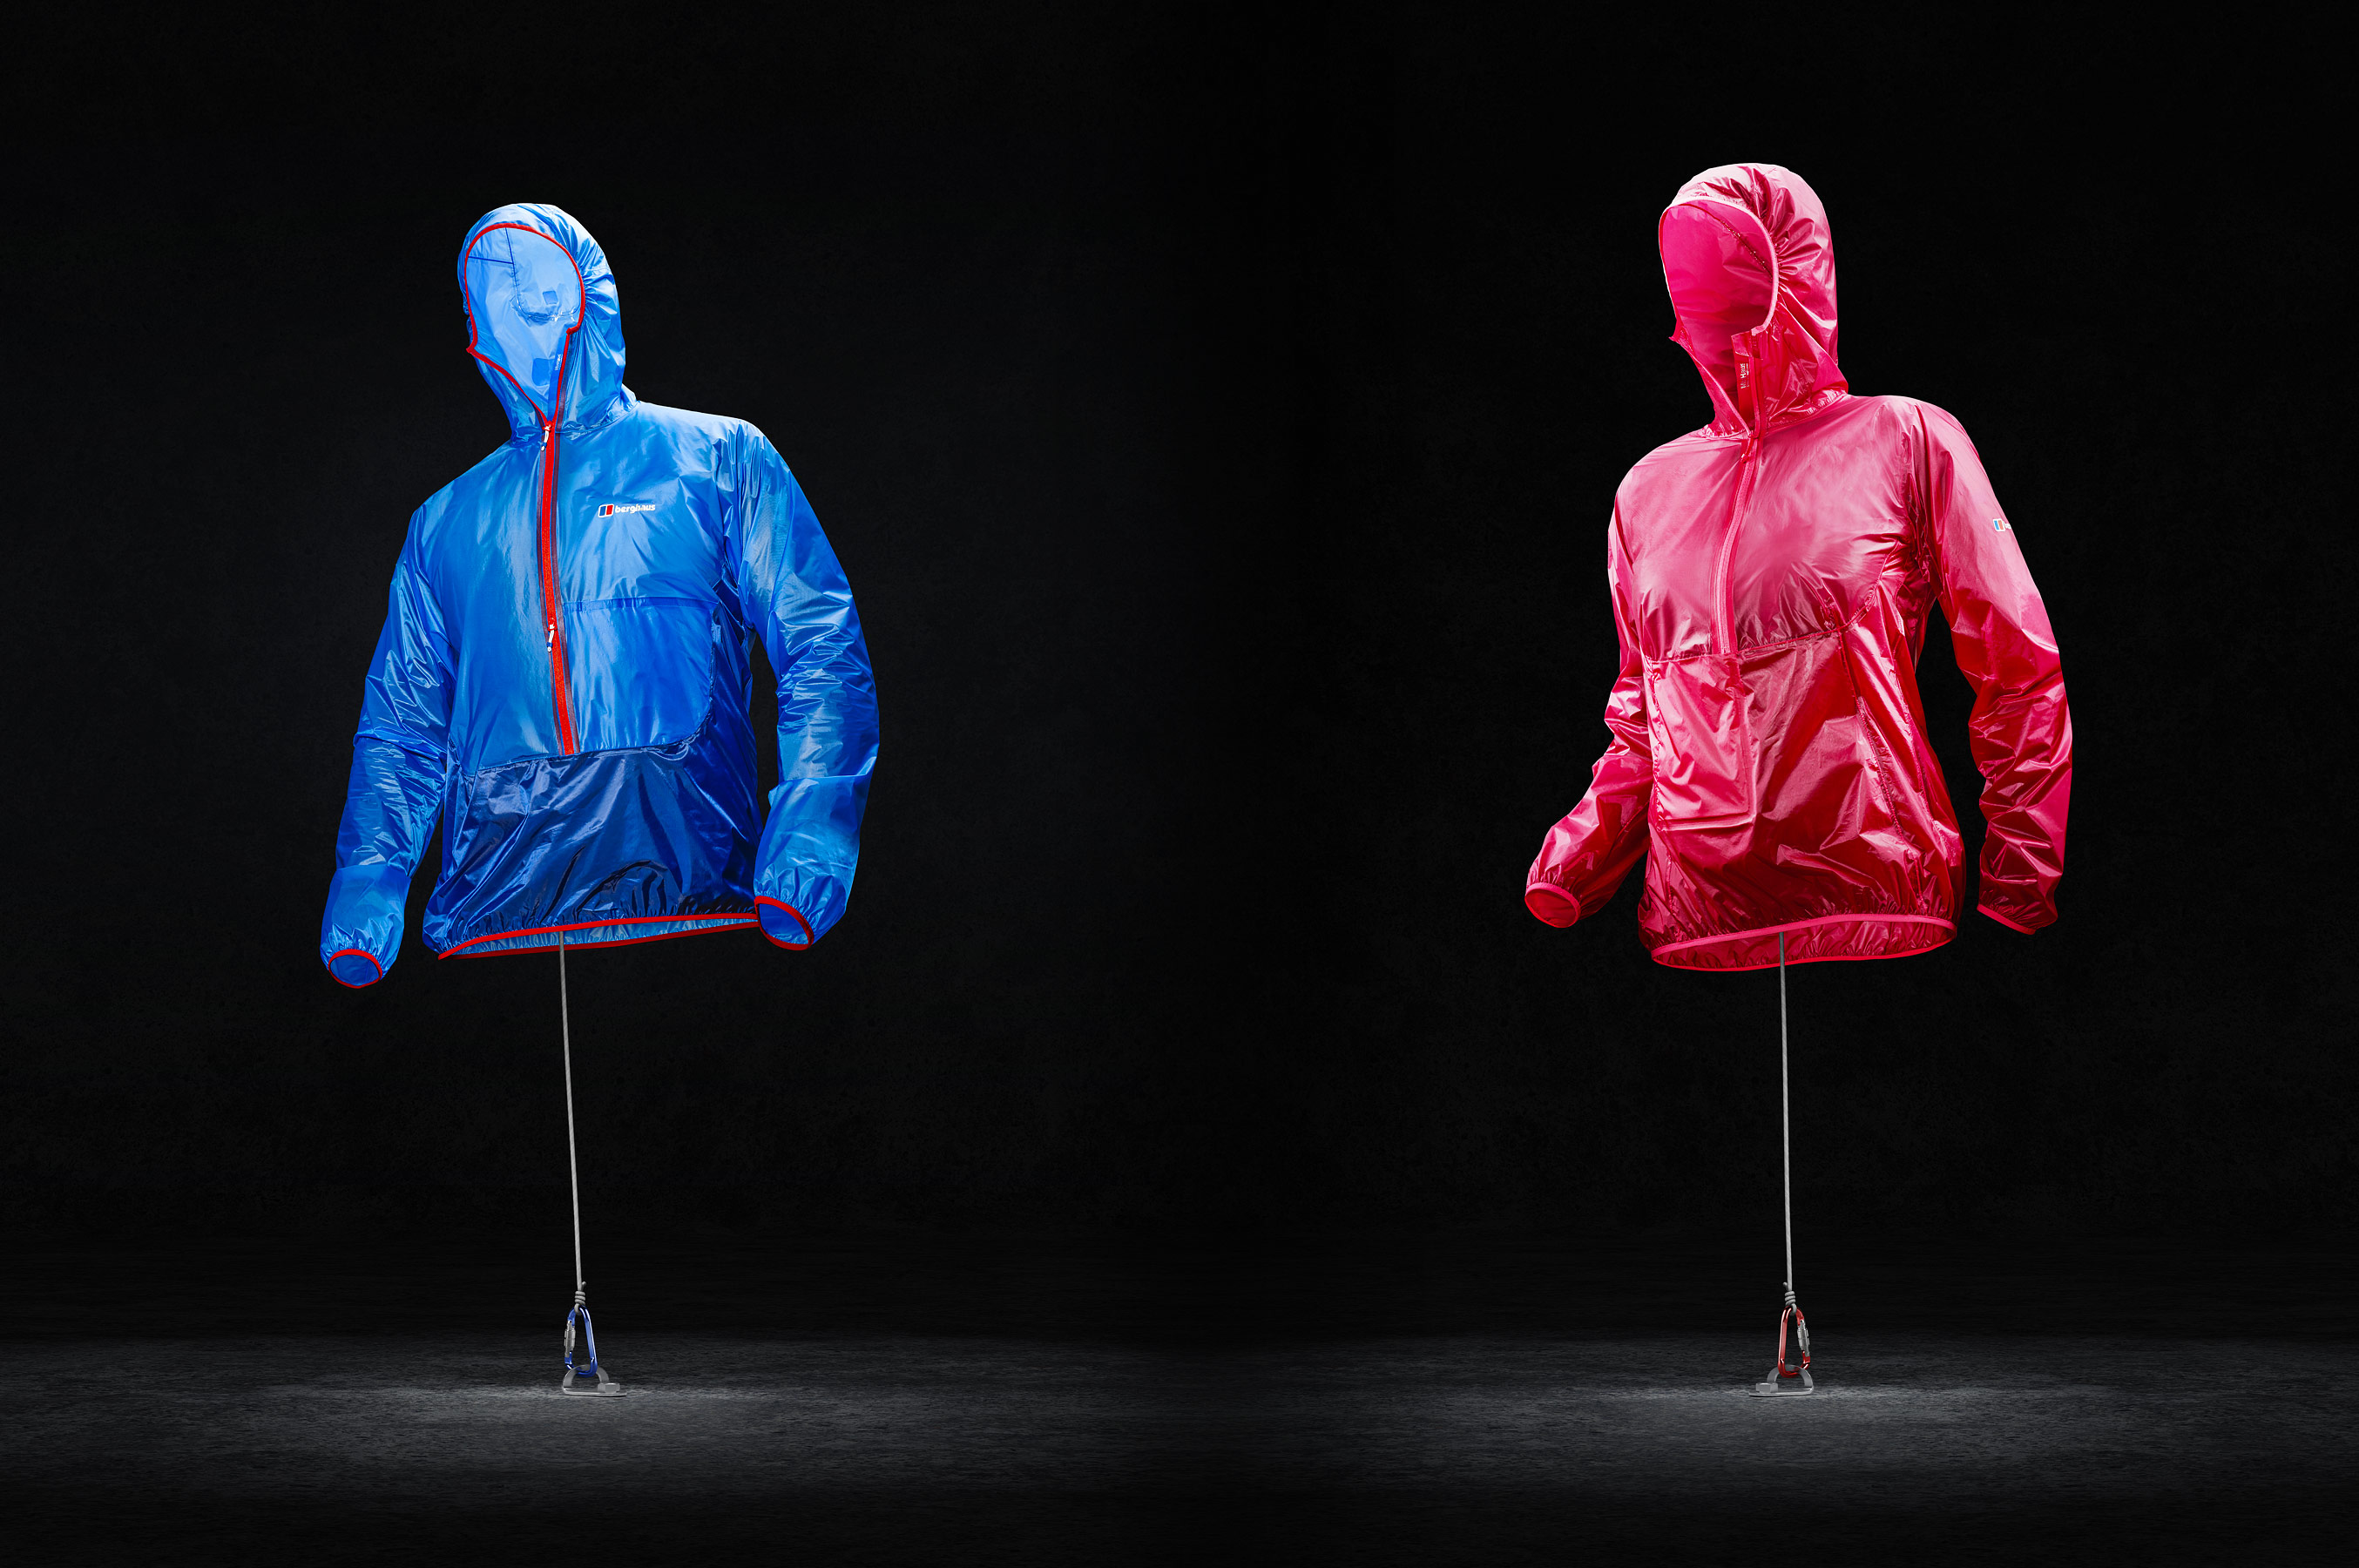 BERGHAUS_TANK_LOVE_WAREHOUSE_CGI_JACKETS_3